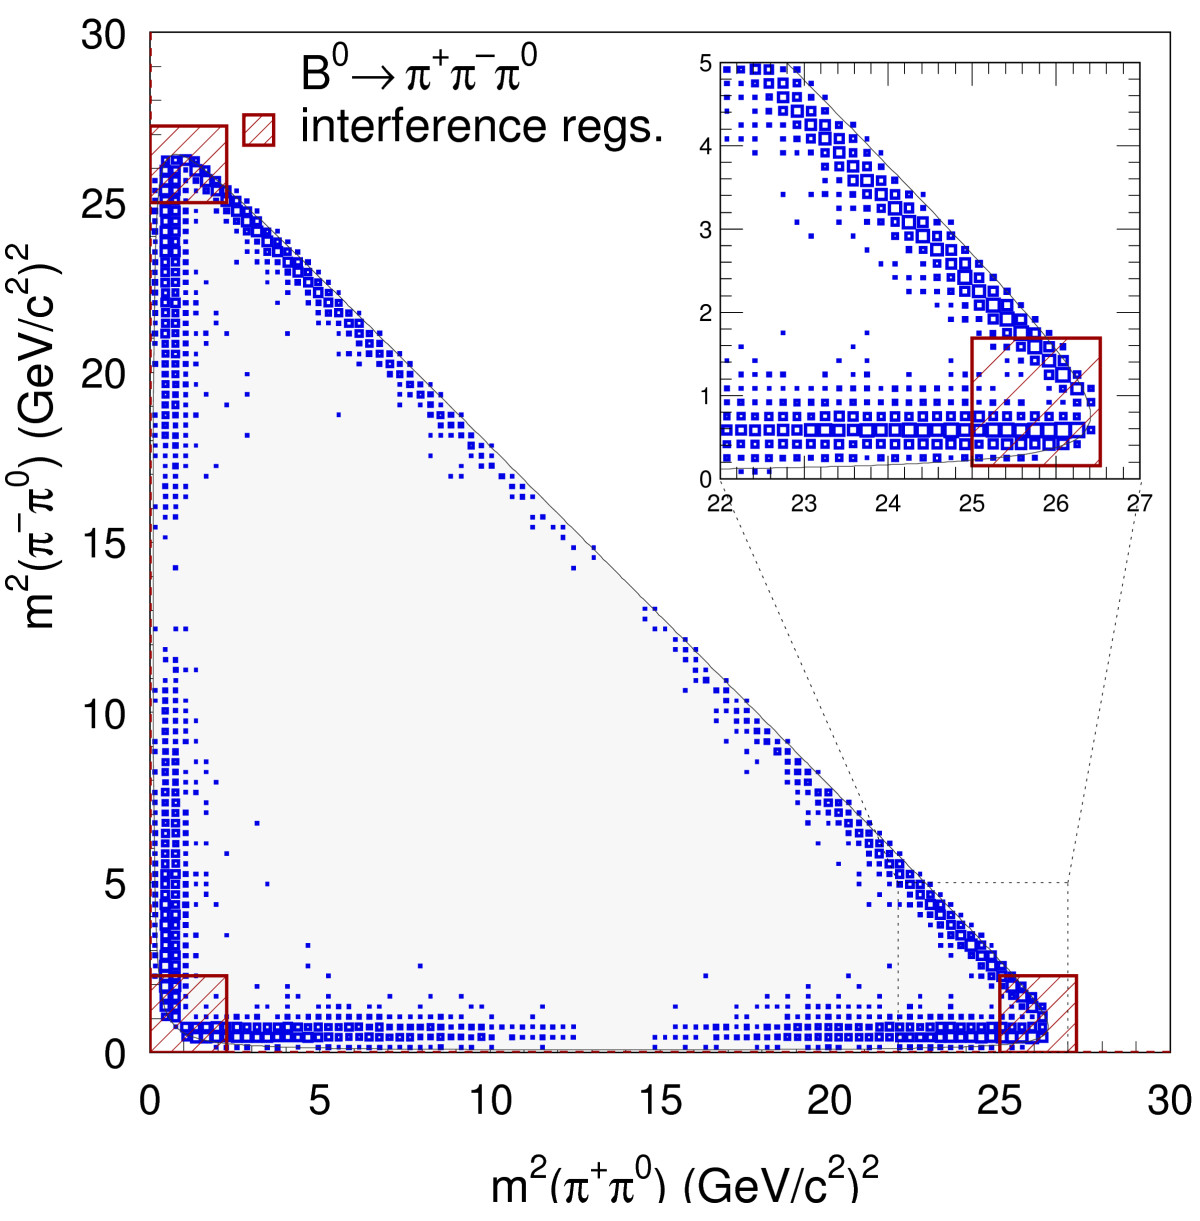 http://static-content.springer.com/image/art%3A10.1186%2F1754-0410-3-3/MediaObjects/13066_2009_Article_17_Fig14_HTML.jpg